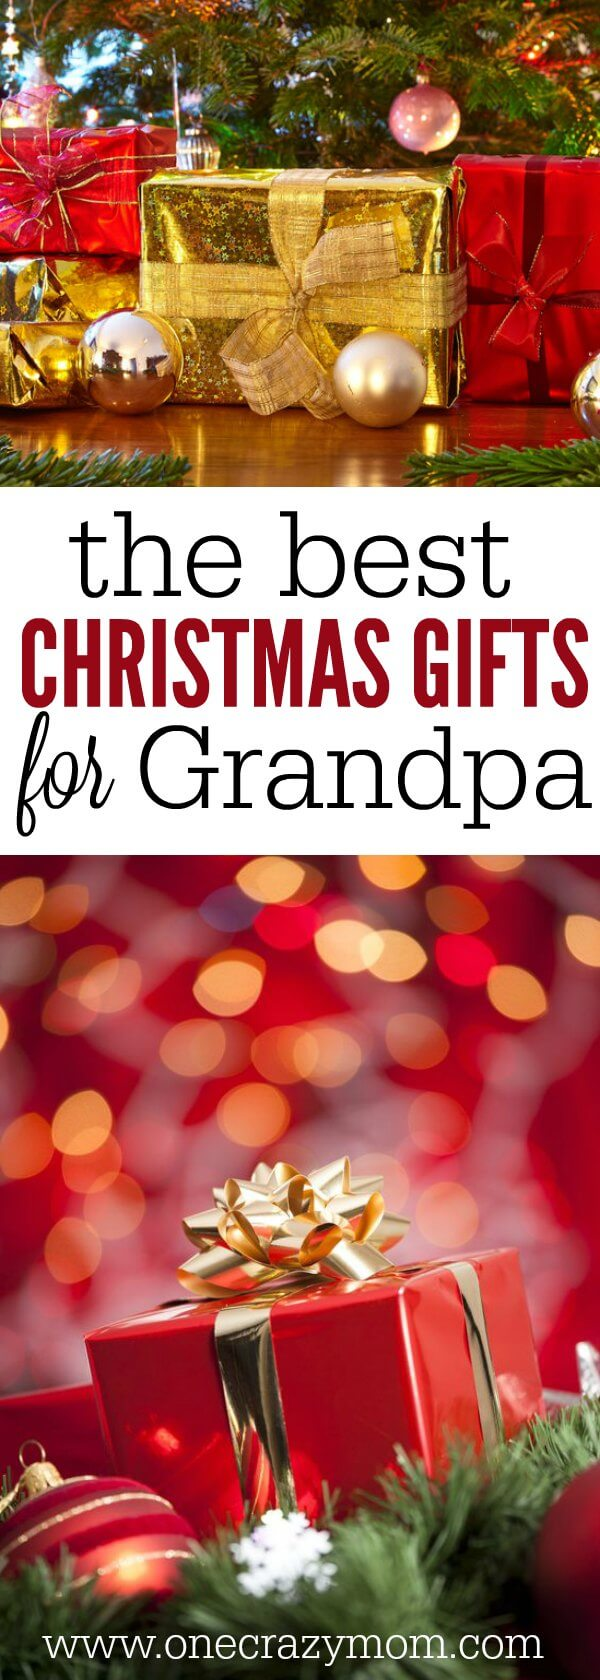 The best gifts for Grandpa.Grandpa gift ideas that will make him feel special.20 gifts for Grandad. Presents for Grandpa he will love.Presents for Grandad!